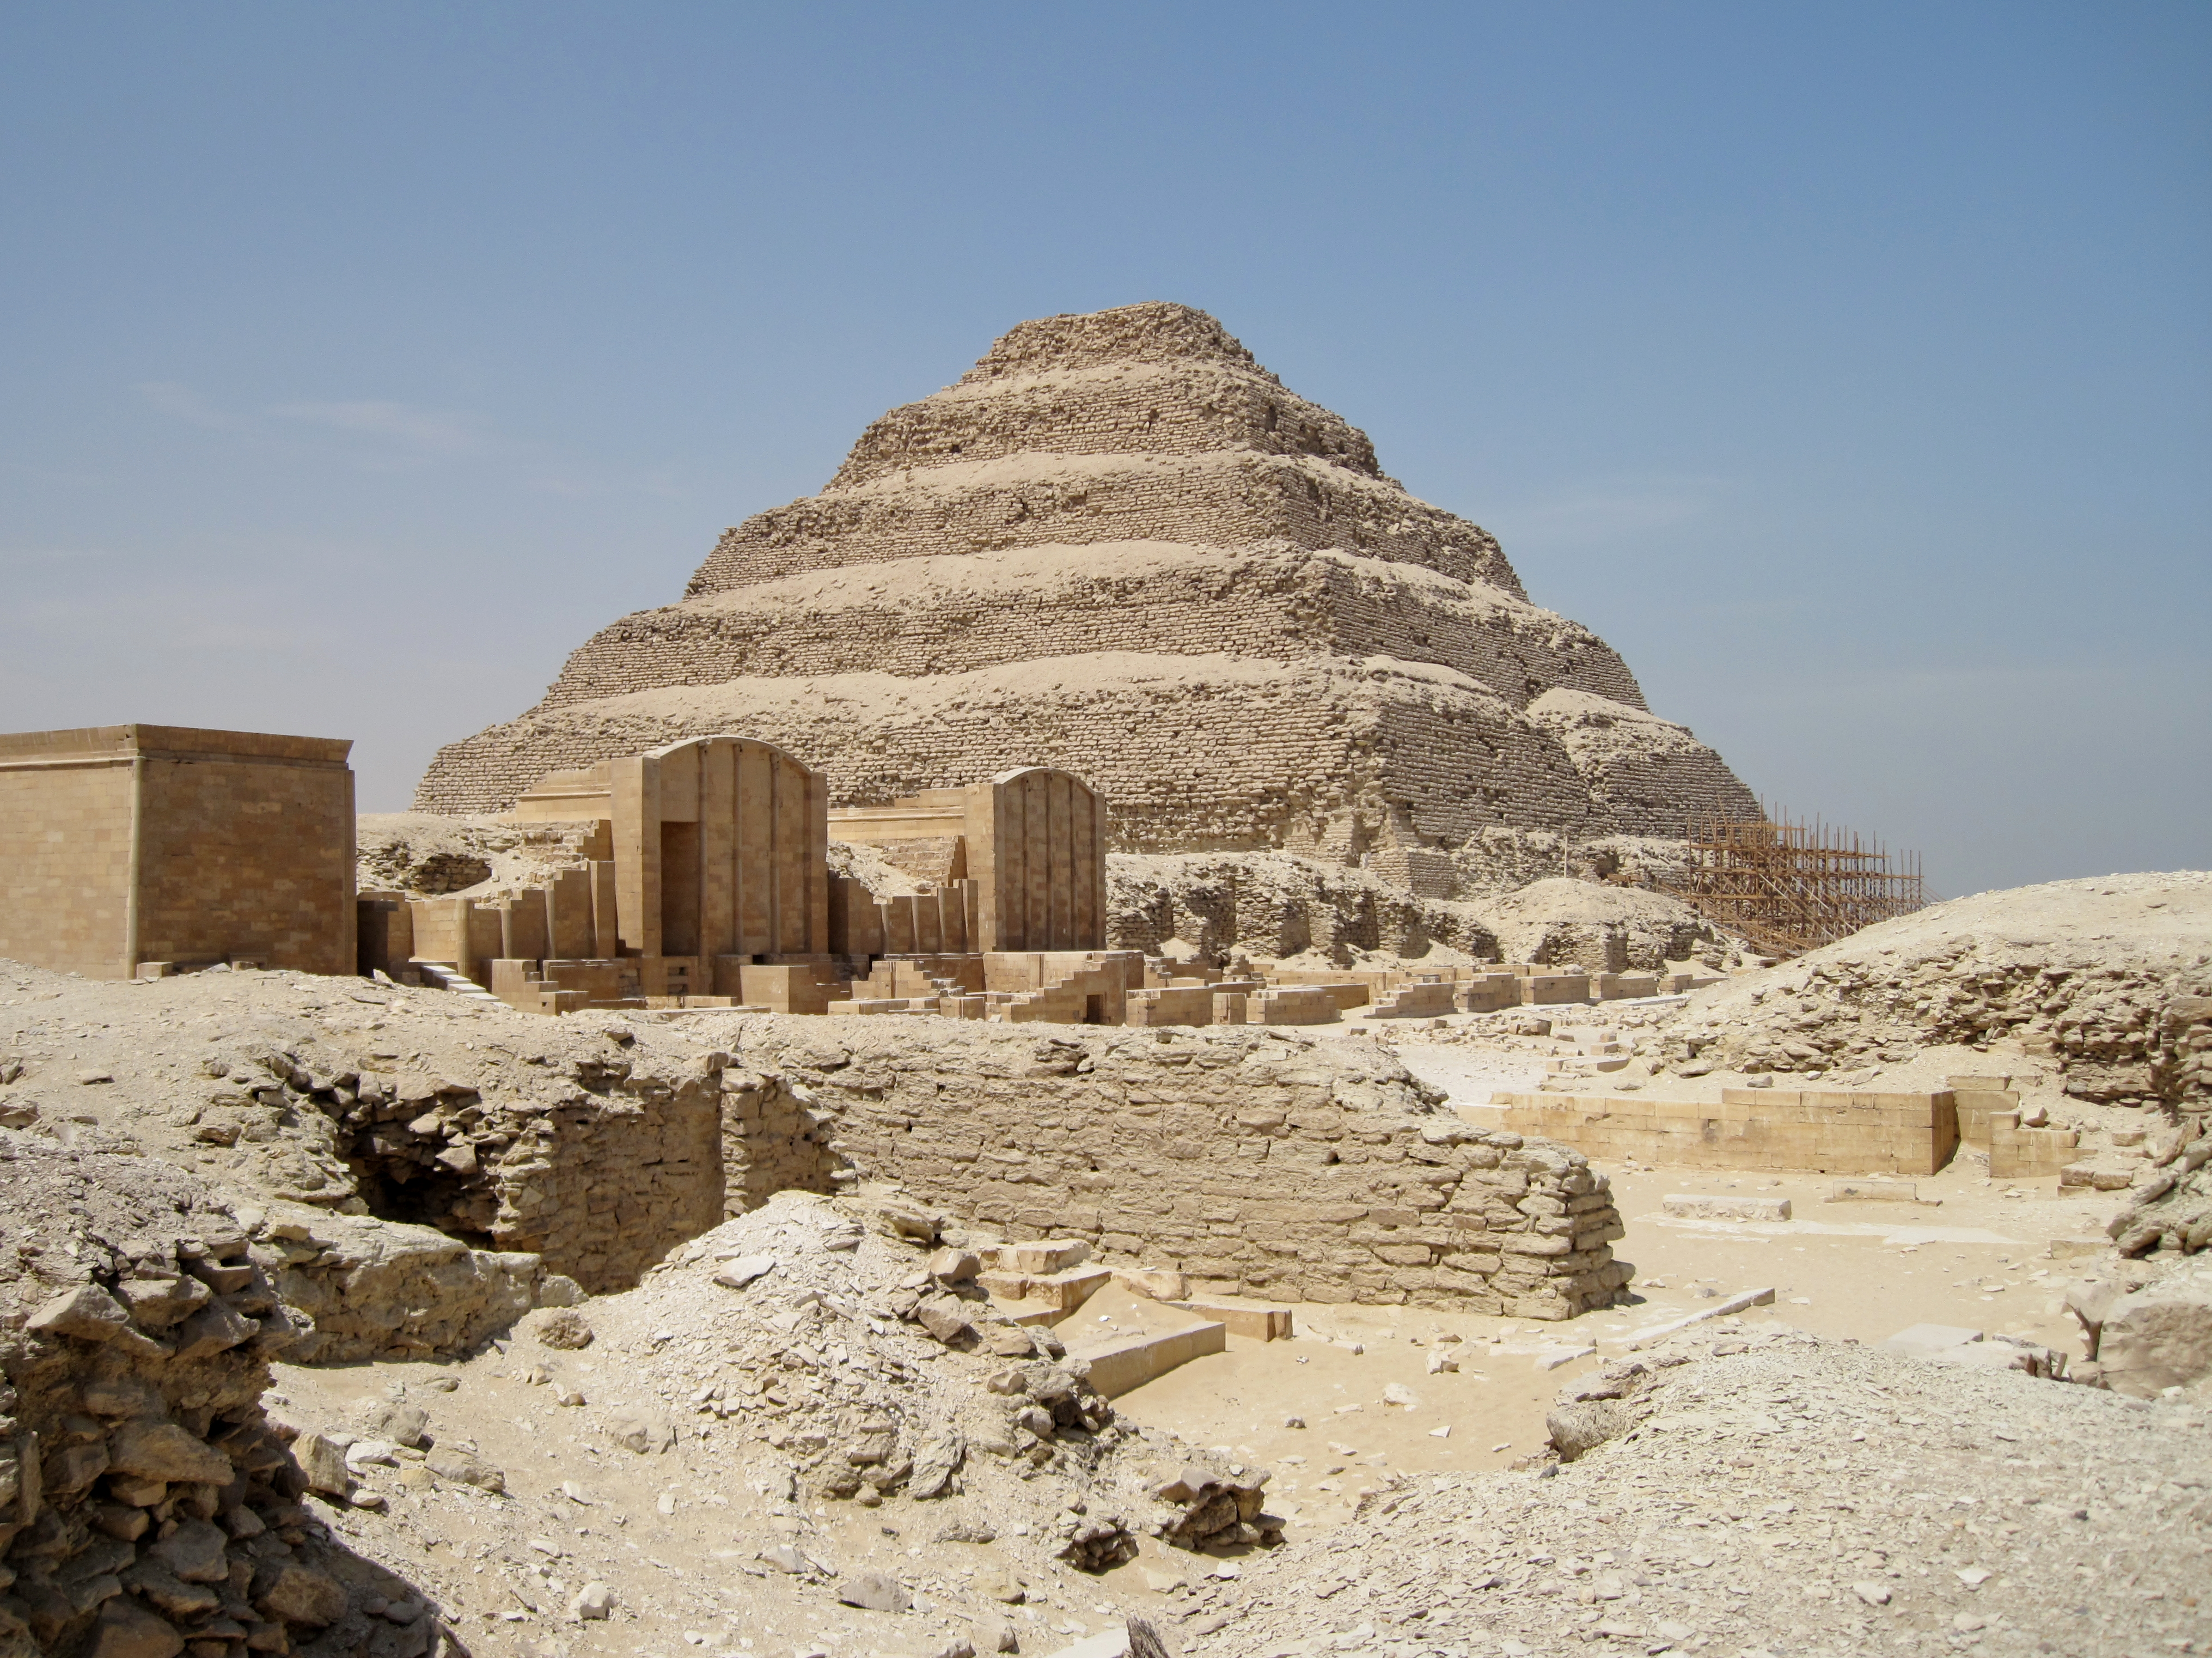 http://upload.wikimedia.org/wikipedia/commons/3/3b/Sakkara_03.jpg